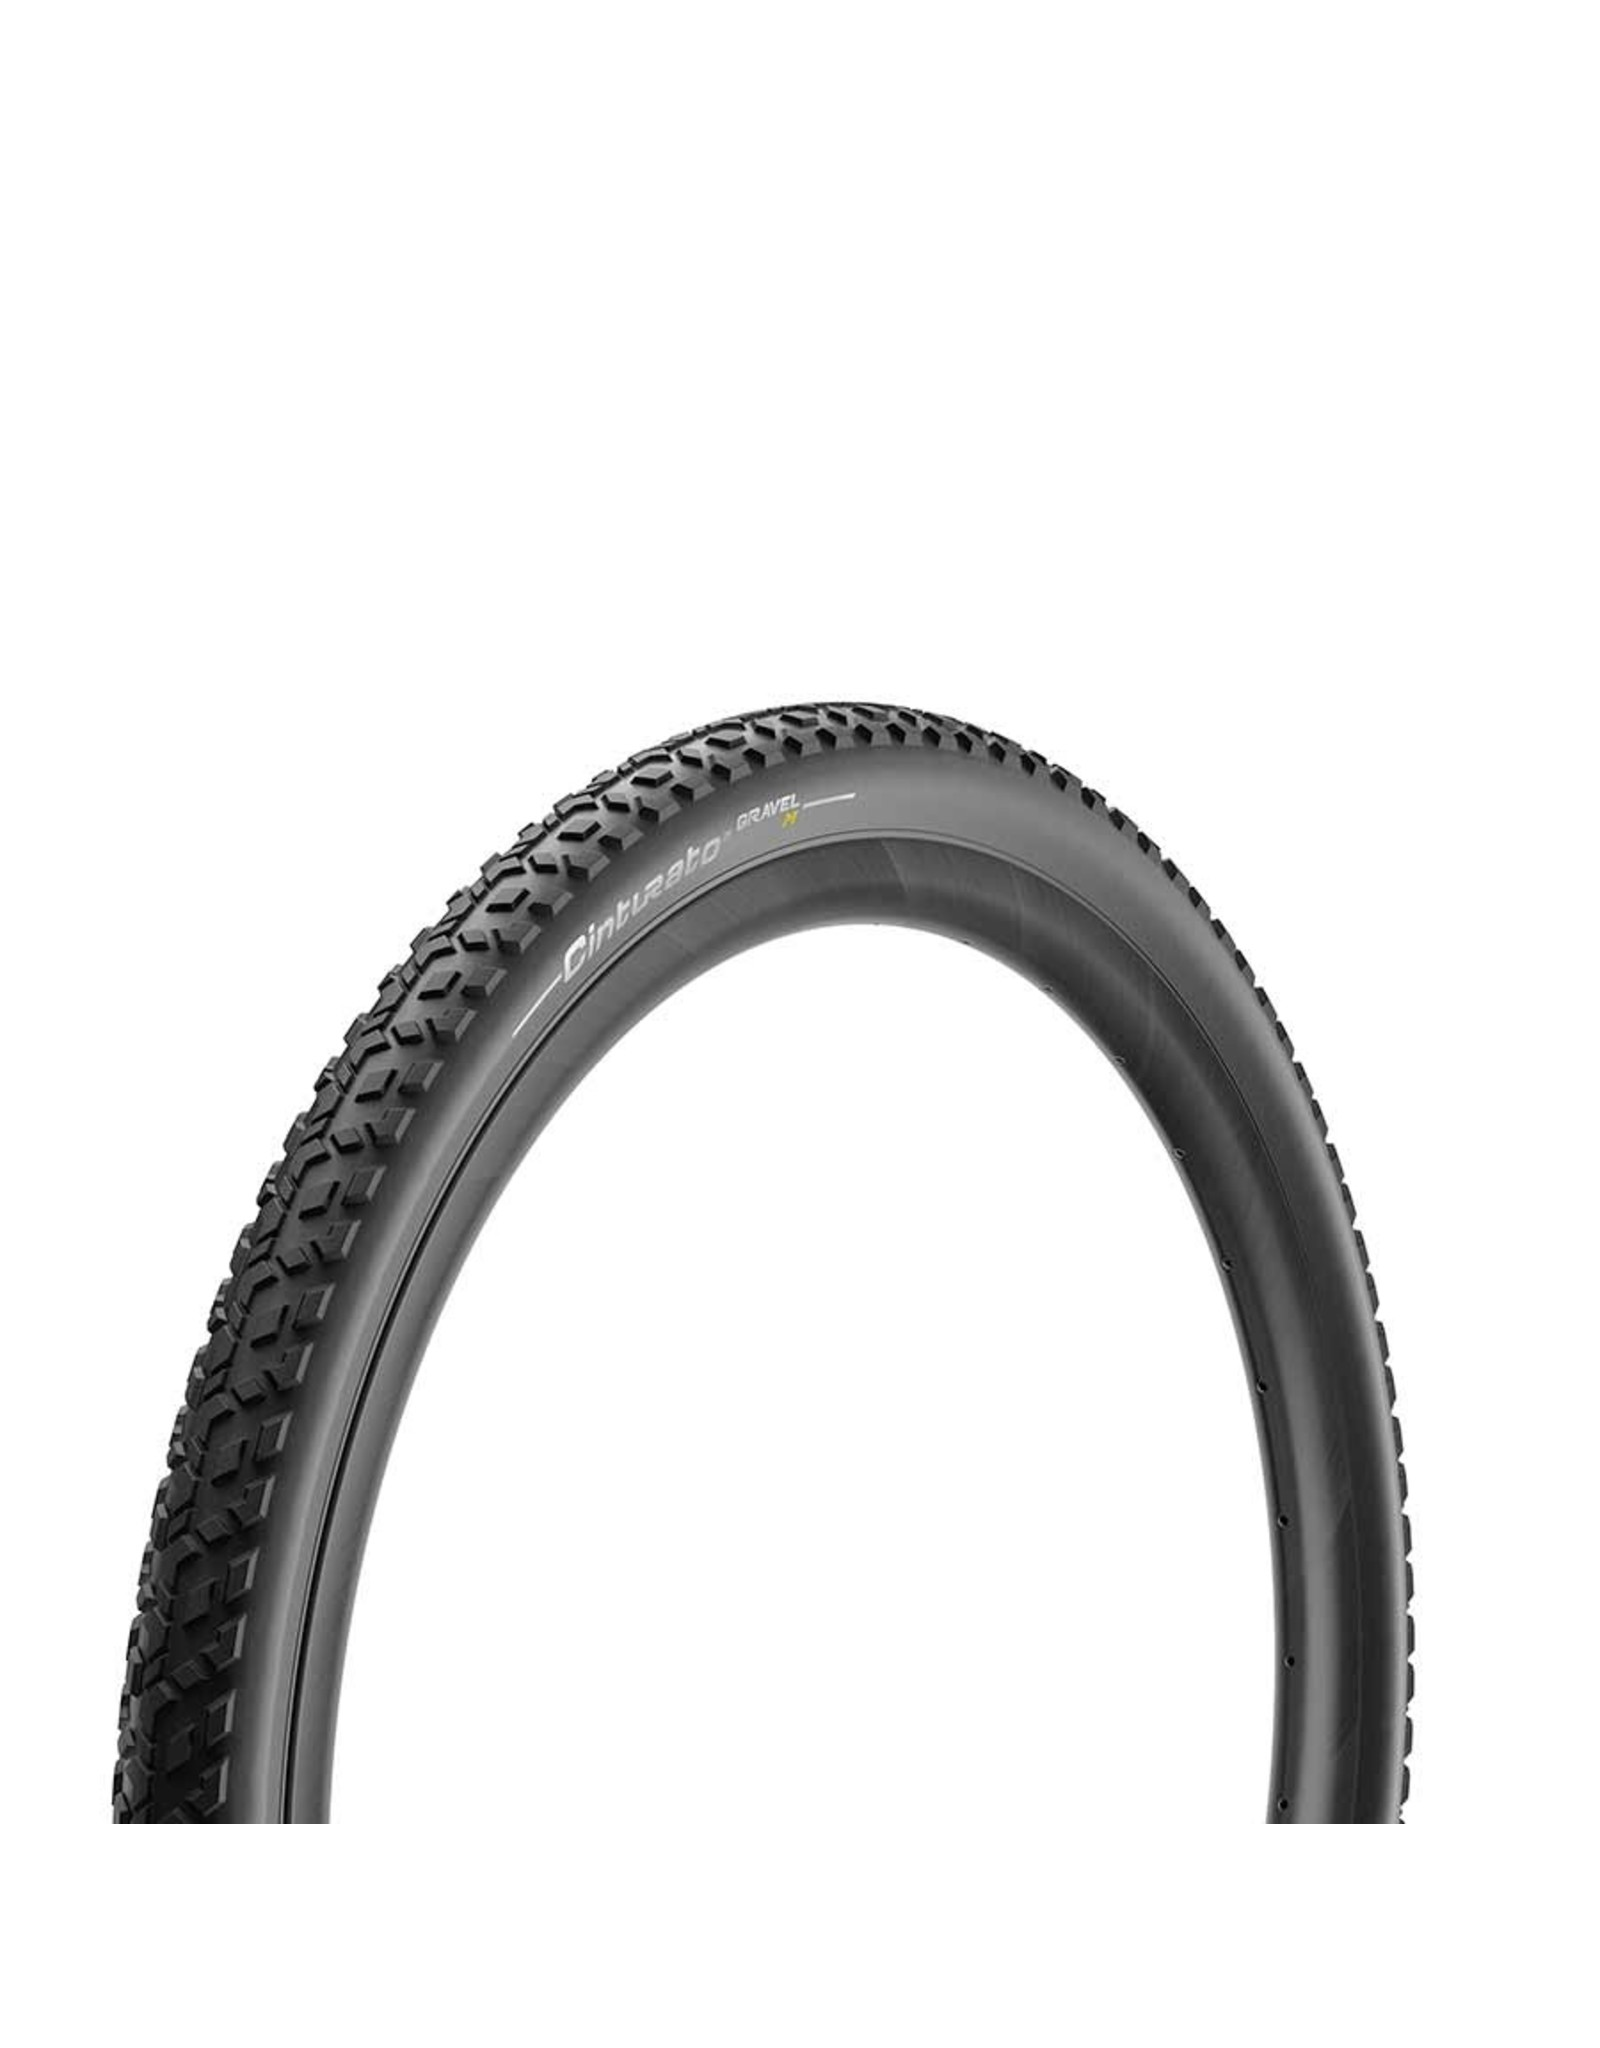 Pirelli, Cinturato Gravel M, Tire, 700x35C, Folding, Tubeless Ready, SpeedGrip, 127TPI, Black